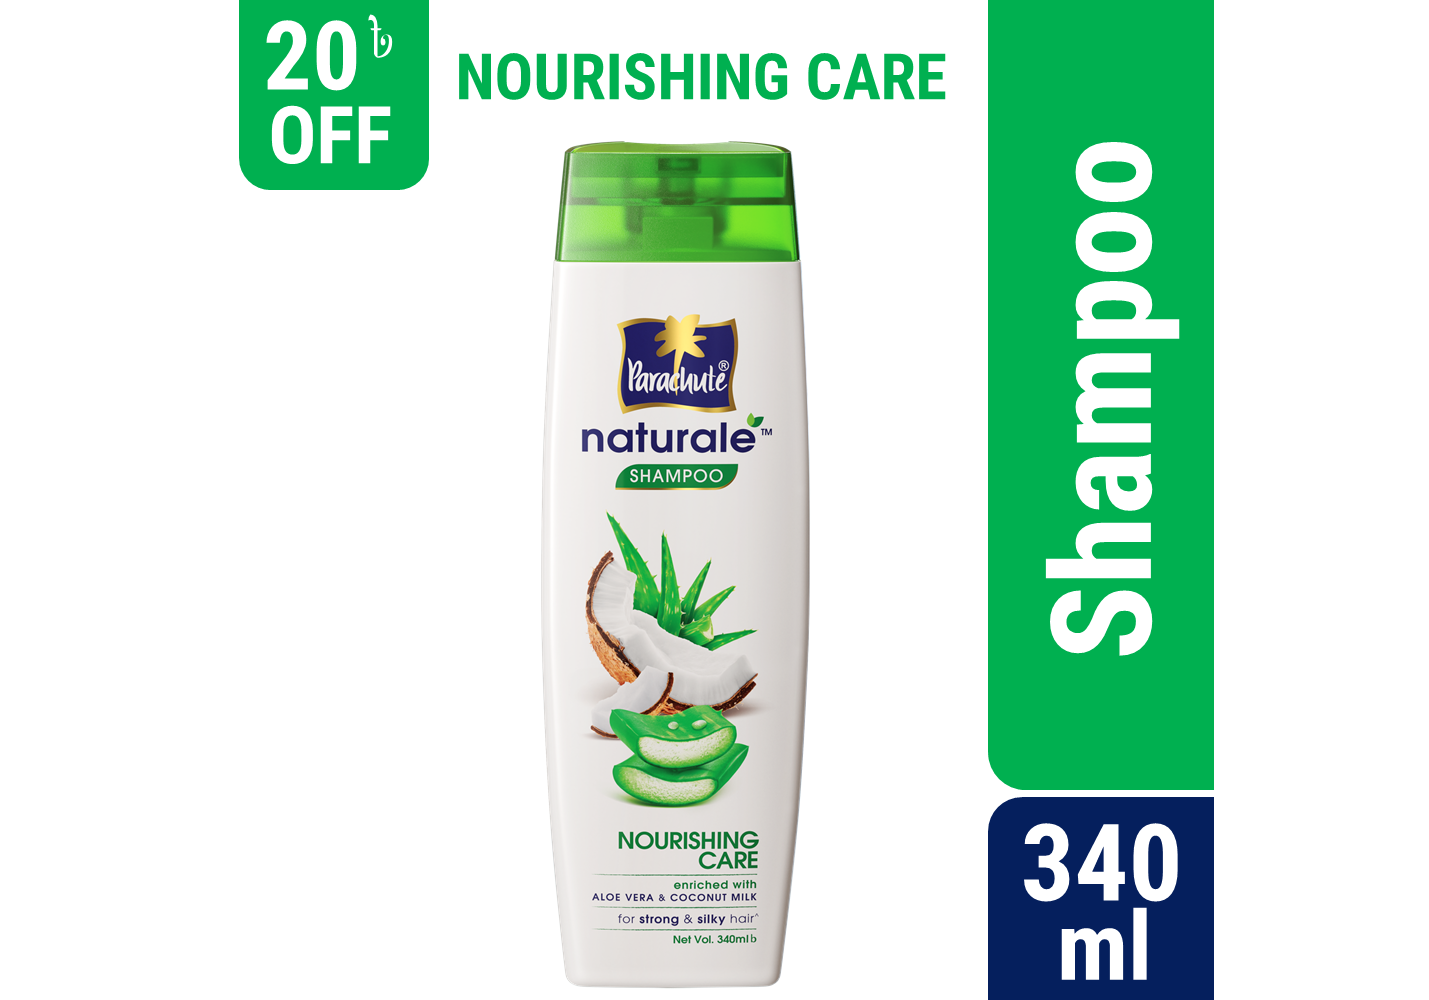 Parachute Naturale Shampoo Nourishing Care 340ml